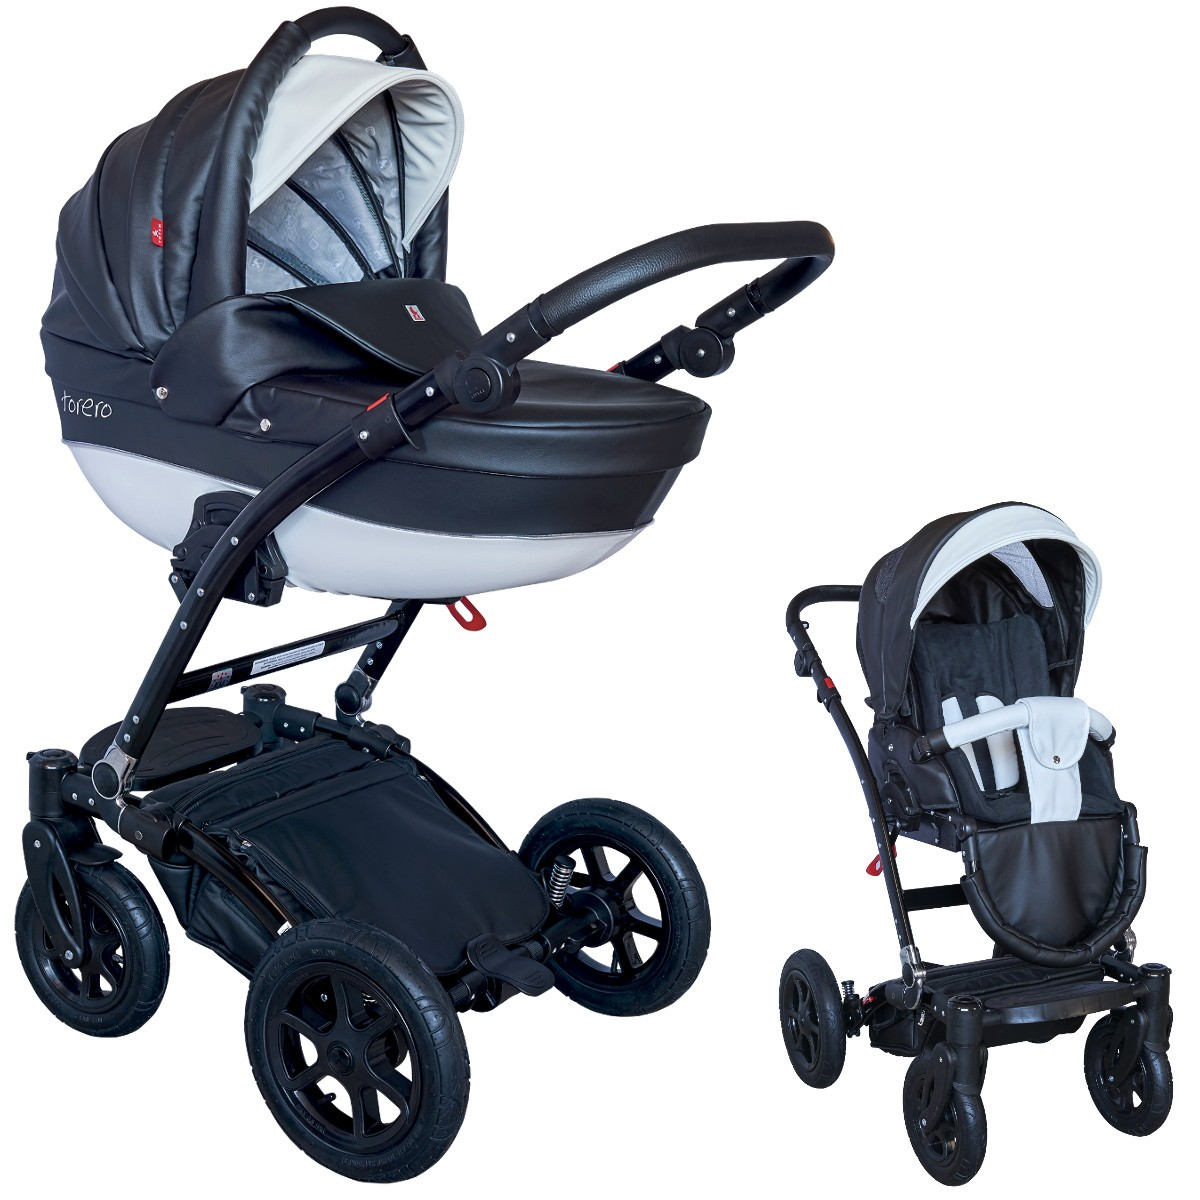 torero eco kombi kinderwagen 2in1 mit babywanne sportwagenaufsatz buggy oder 3in1. Black Bedroom Furniture Sets. Home Design Ideas